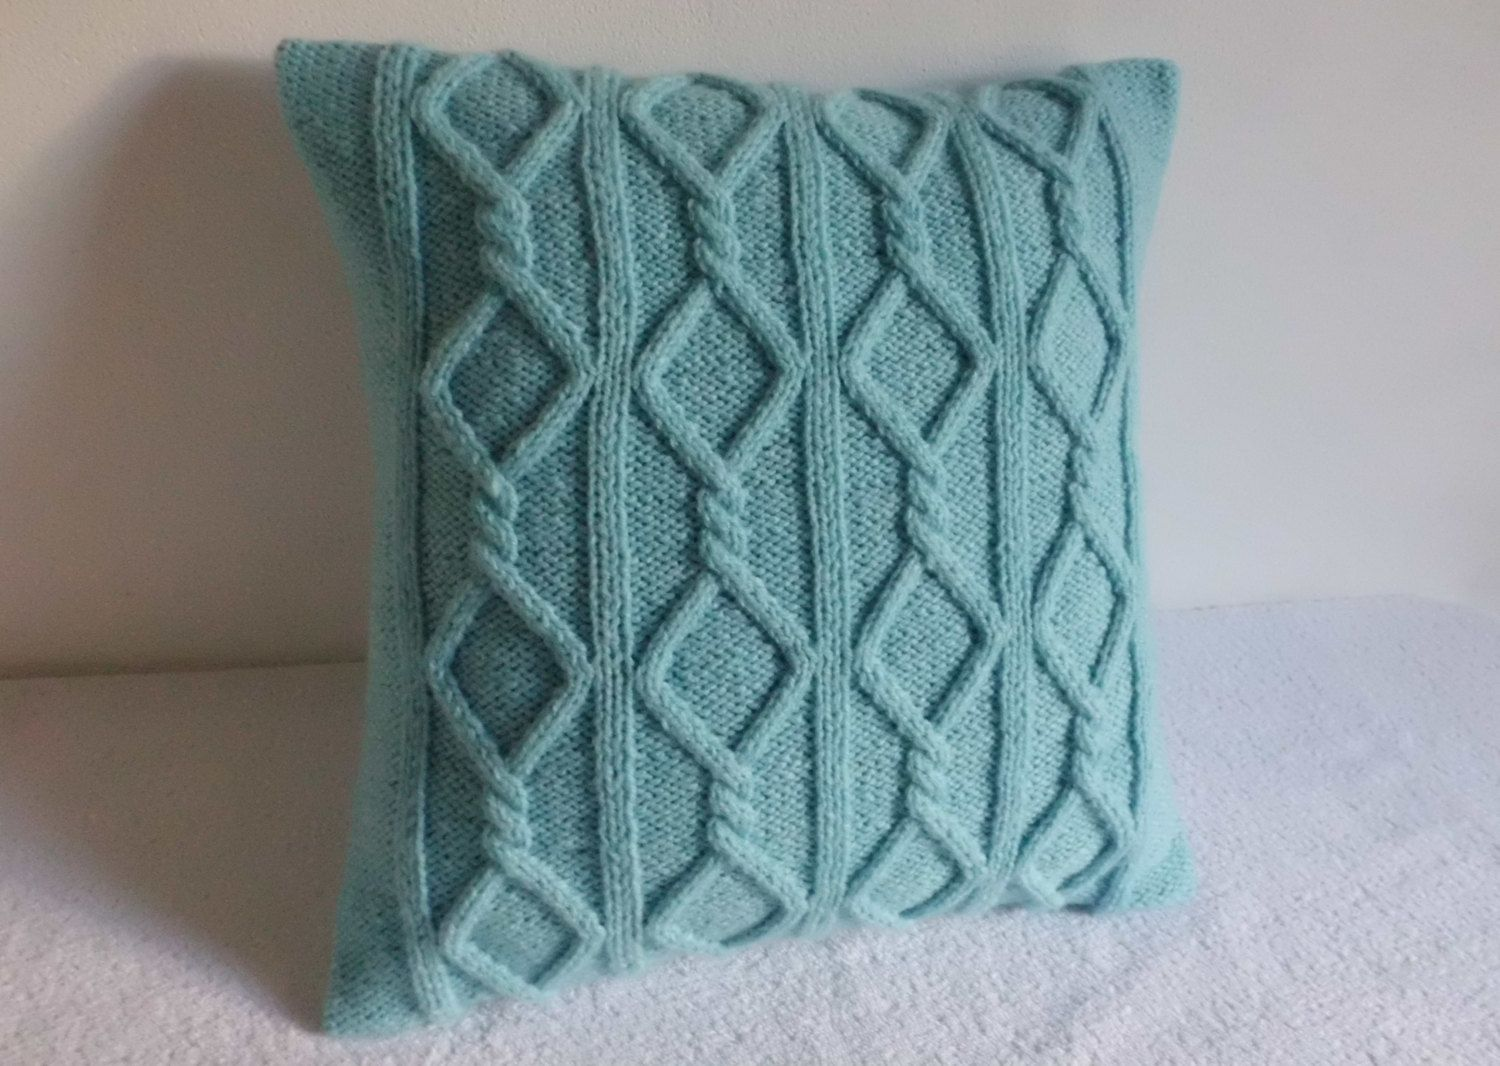 Cable Knit Pillow Cover Aqua, Turquoise Knit Throw Pillow